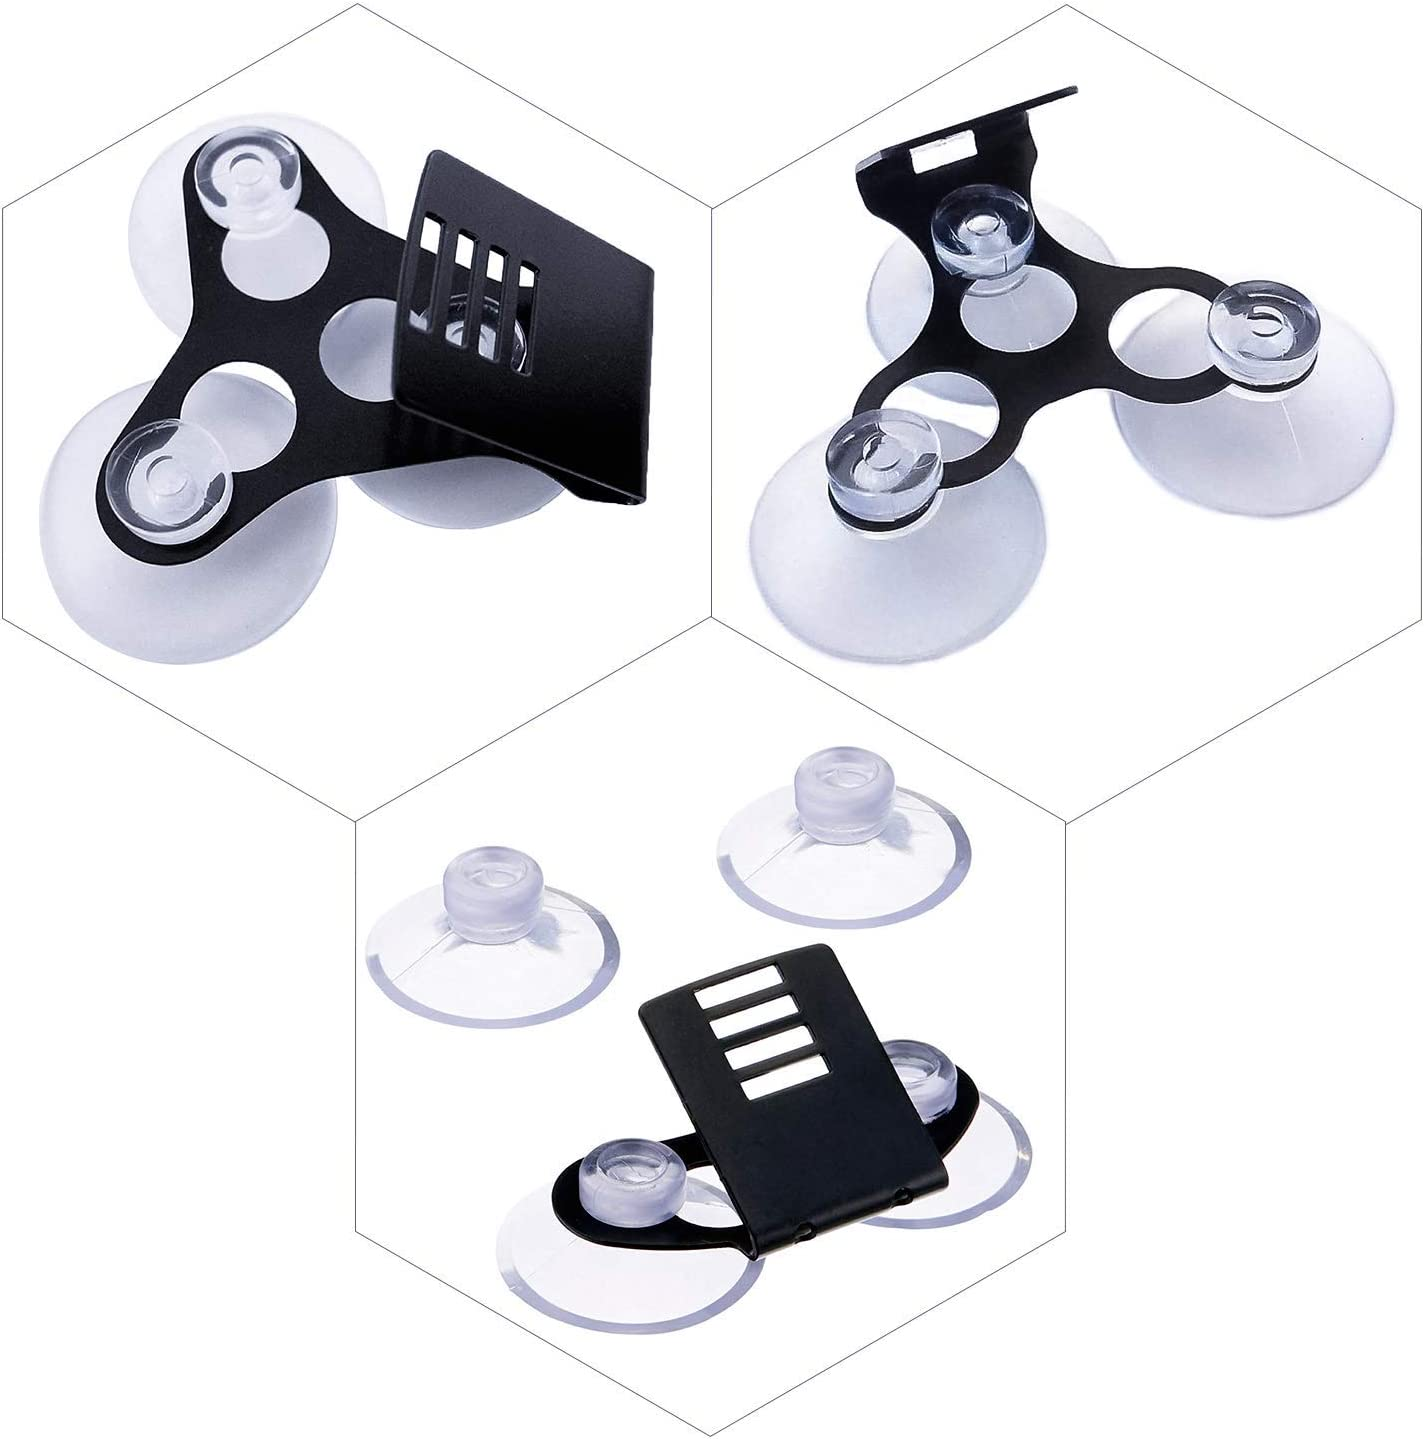 LanBaiLan 10 Pcs Radar Detectors Suction Cups for Clear Cobra Escort and Car Windshield Suction Cup